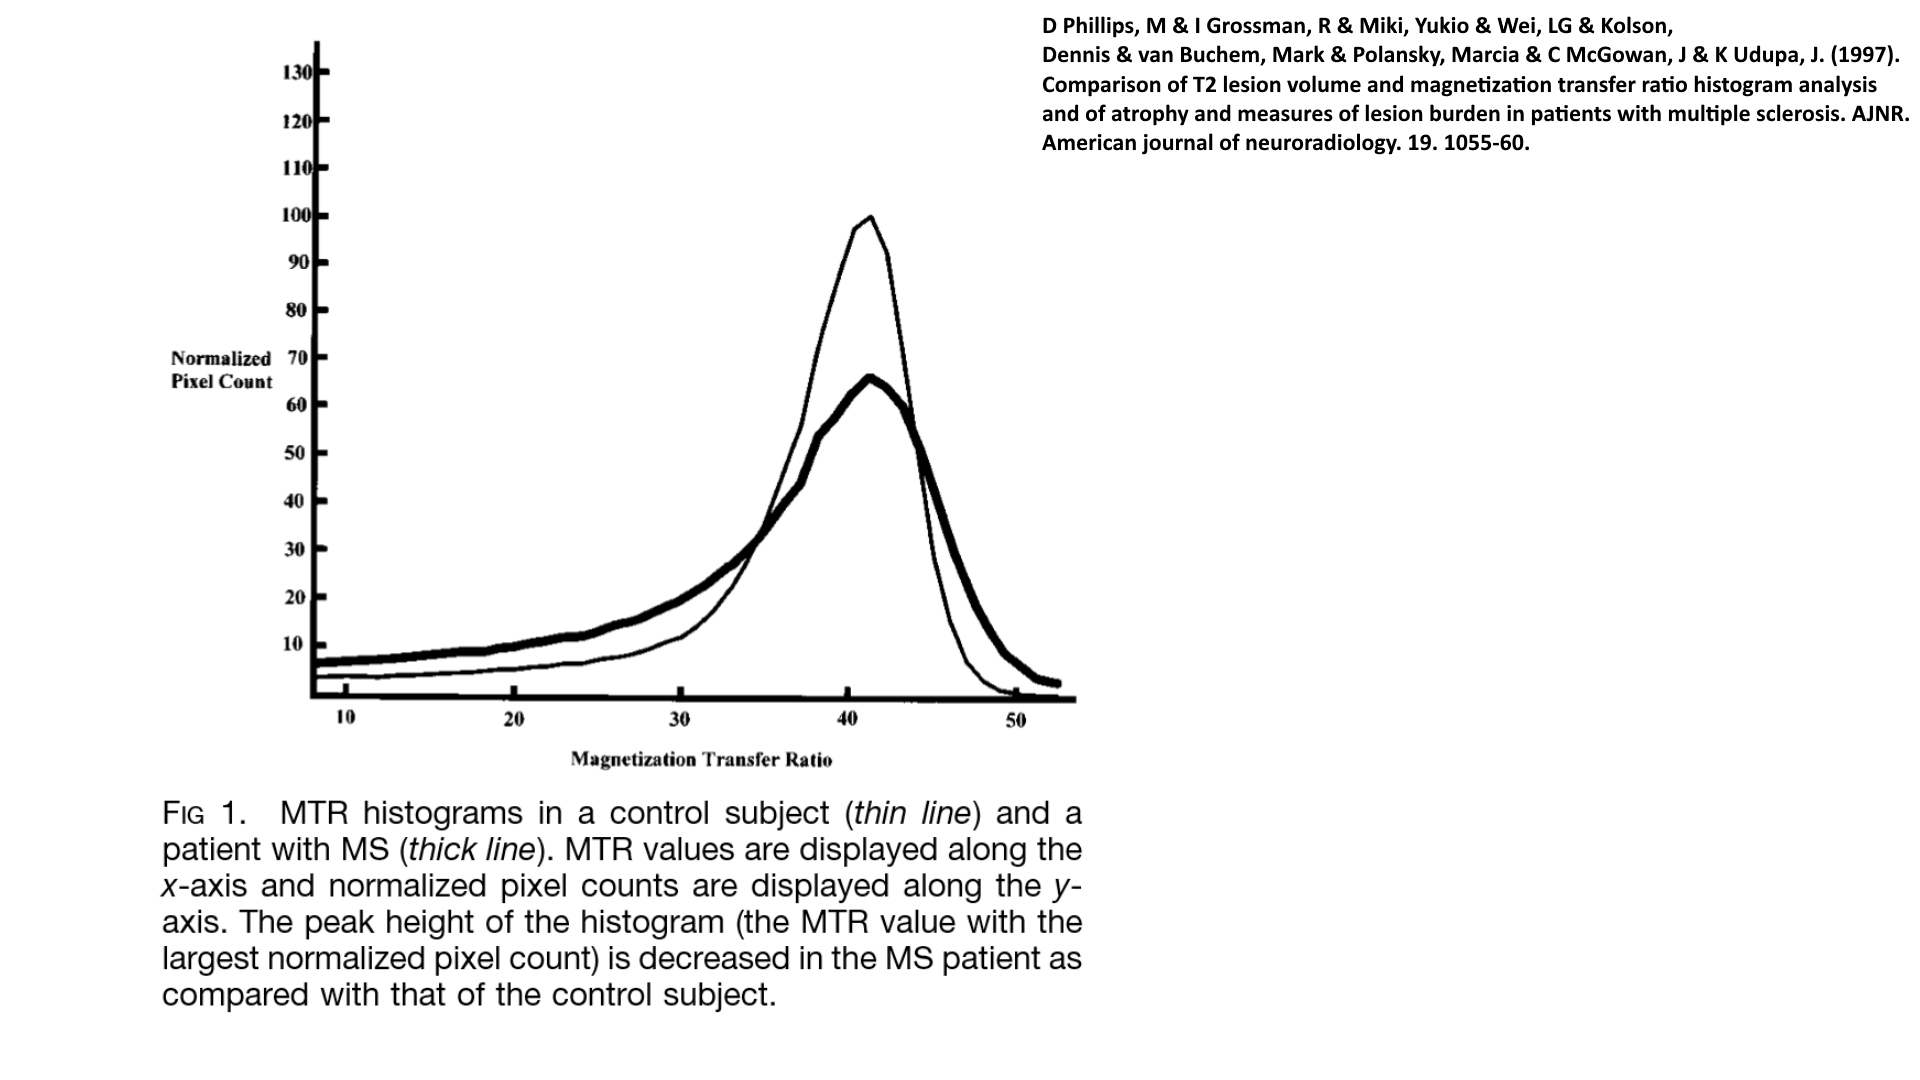 MTR histogram of multiple sclerosis patient compared to control